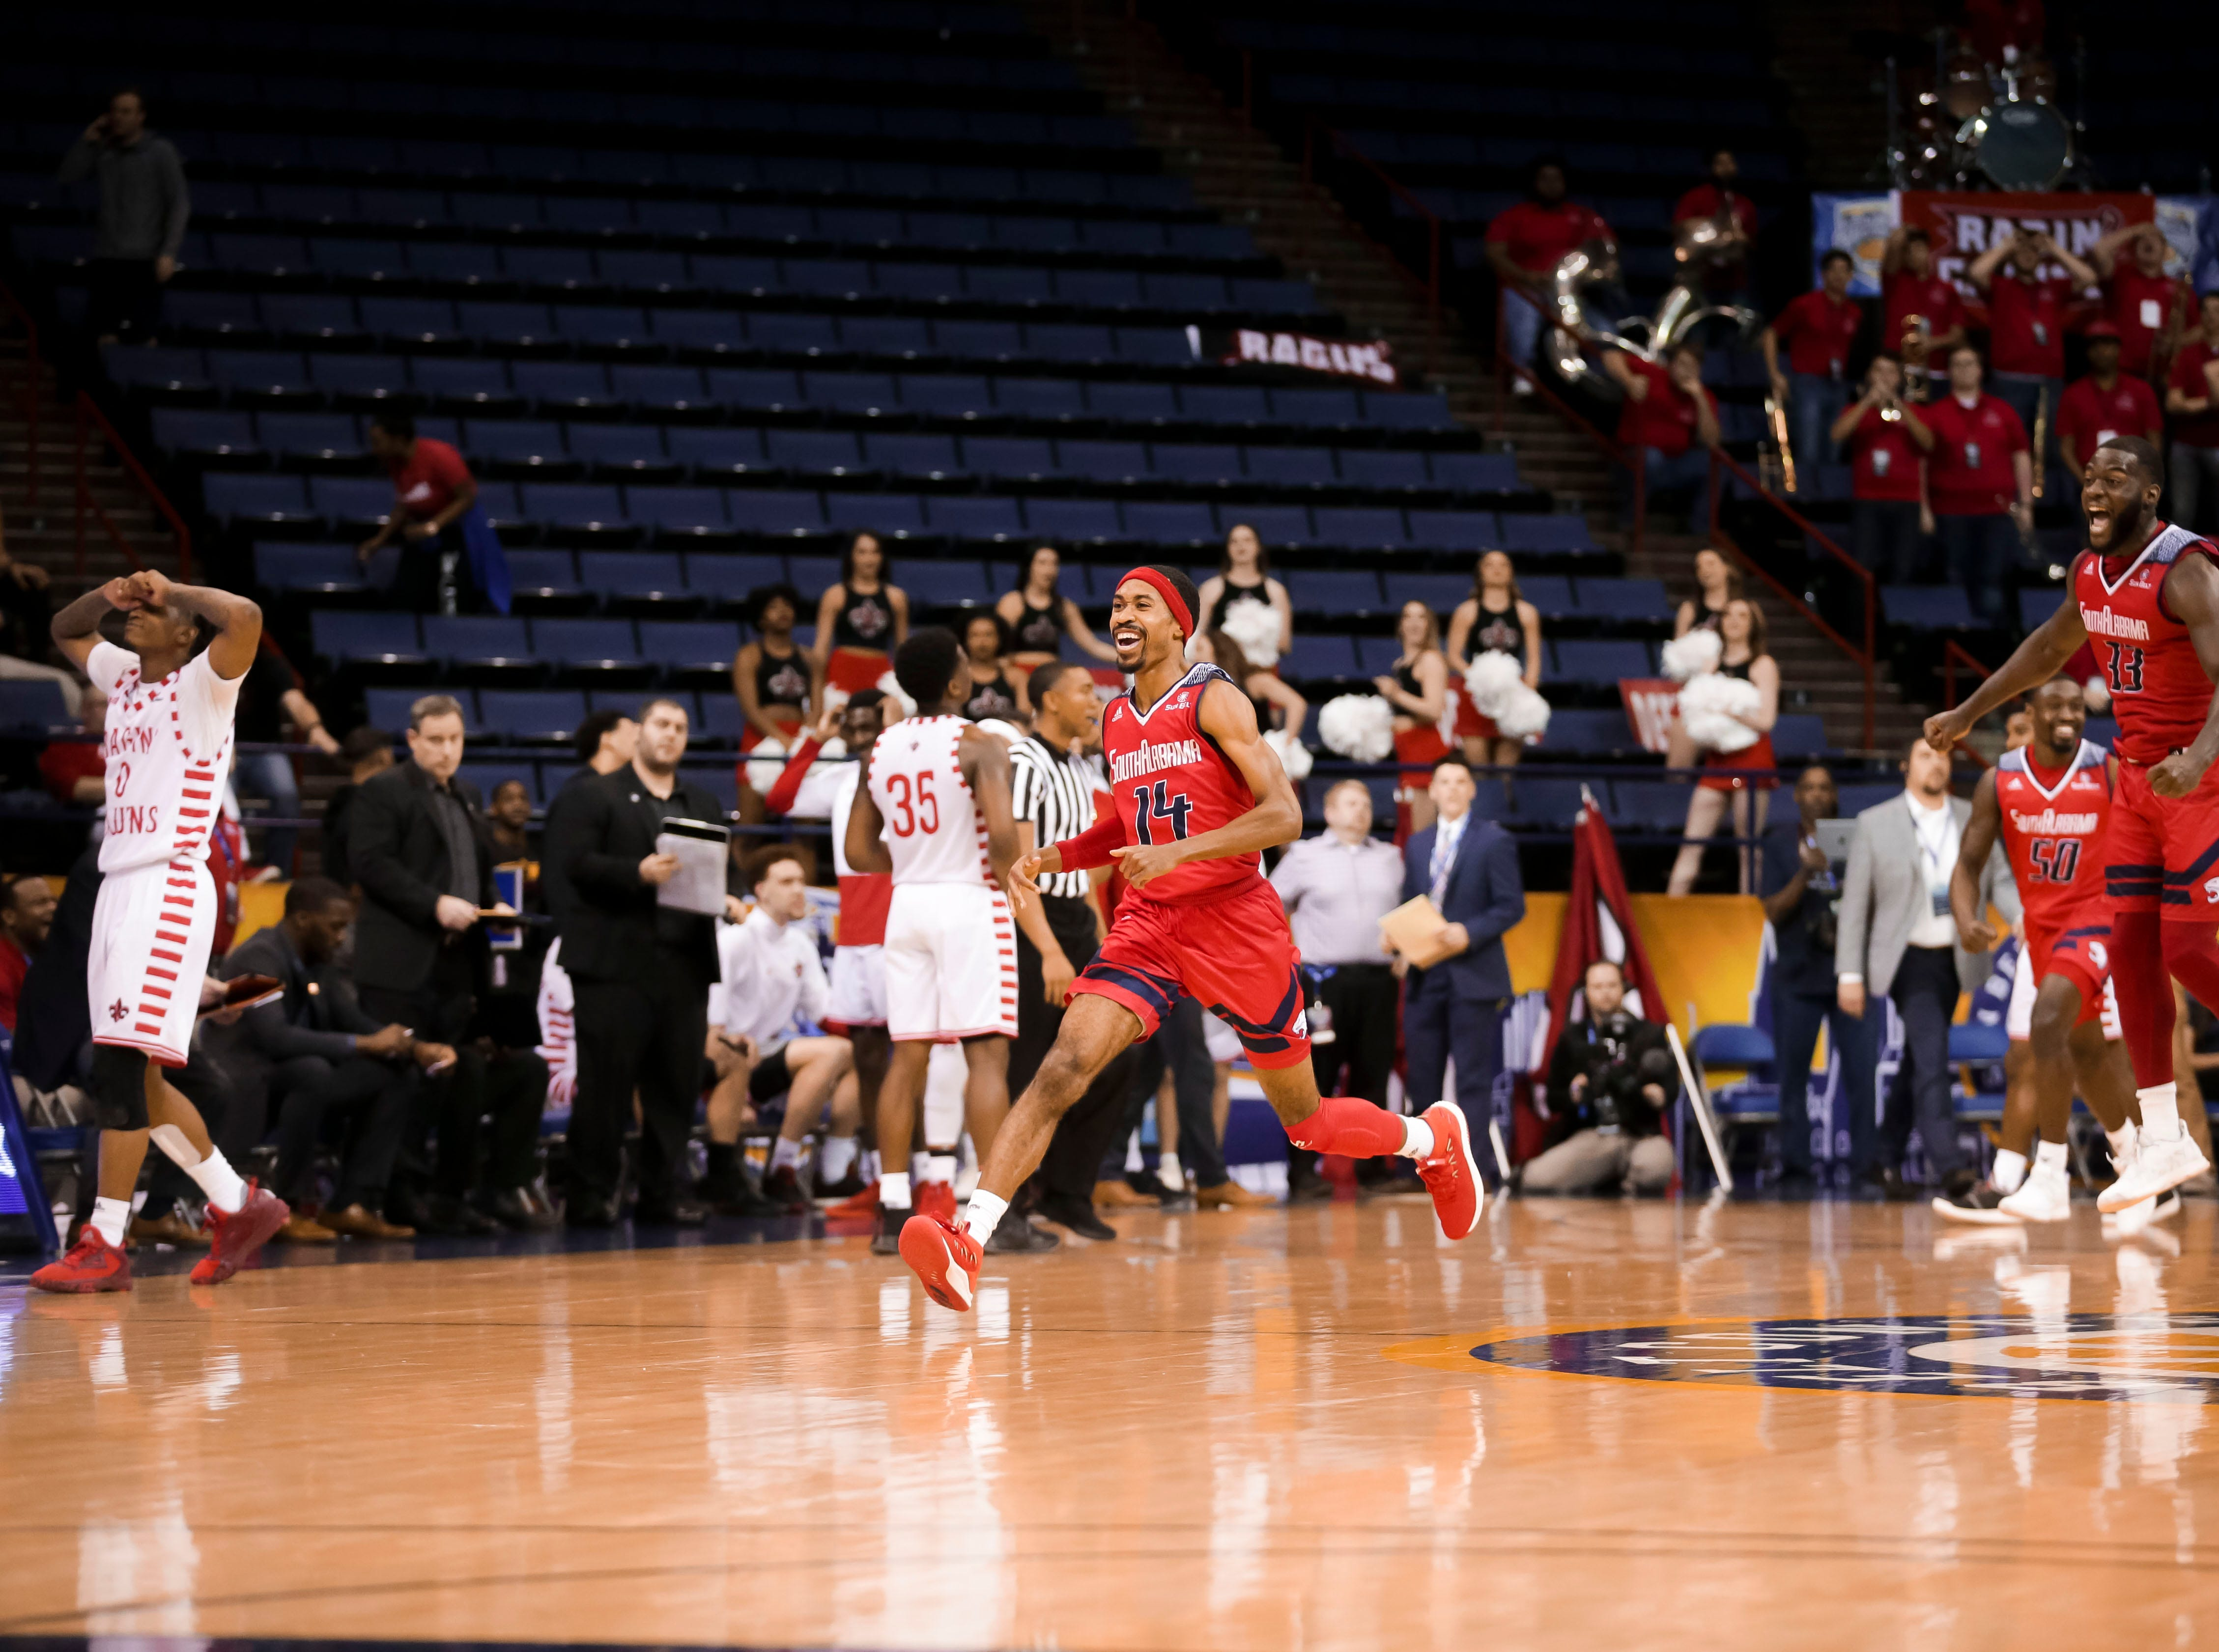 UL and South Alabama players react as the Ragin' Cajuns fell to South Alabama, 70-69, on Thursday at the Sun Belt Men's Basketball Championship in New Orleans.